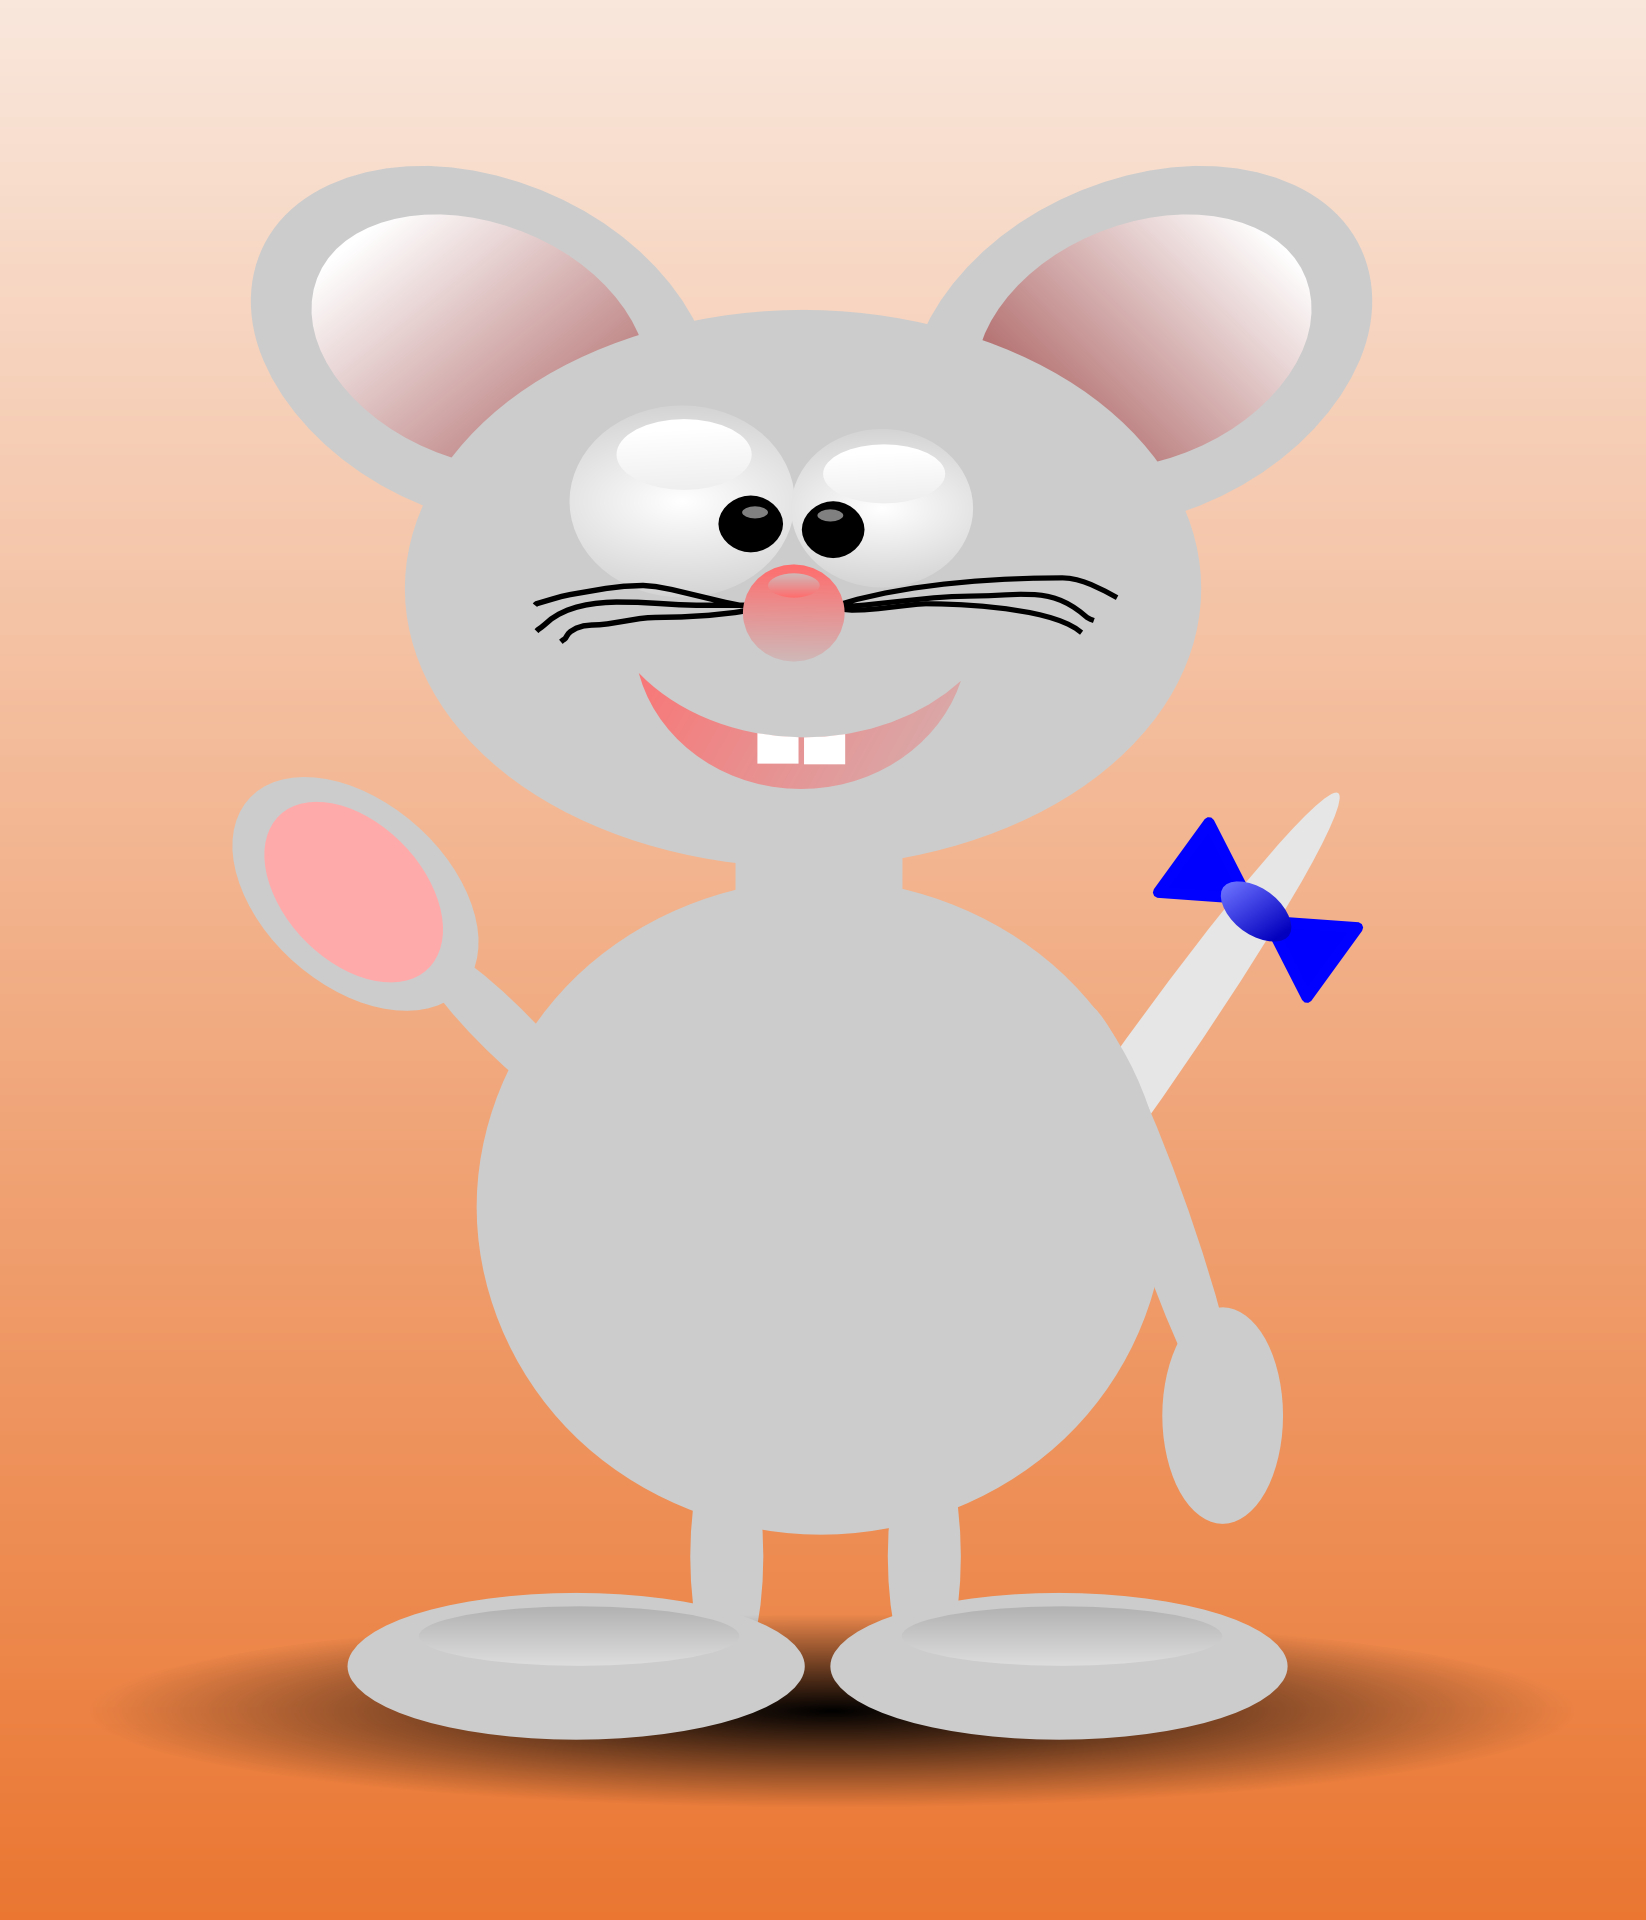 Smiley mouse,cartoon animal vector